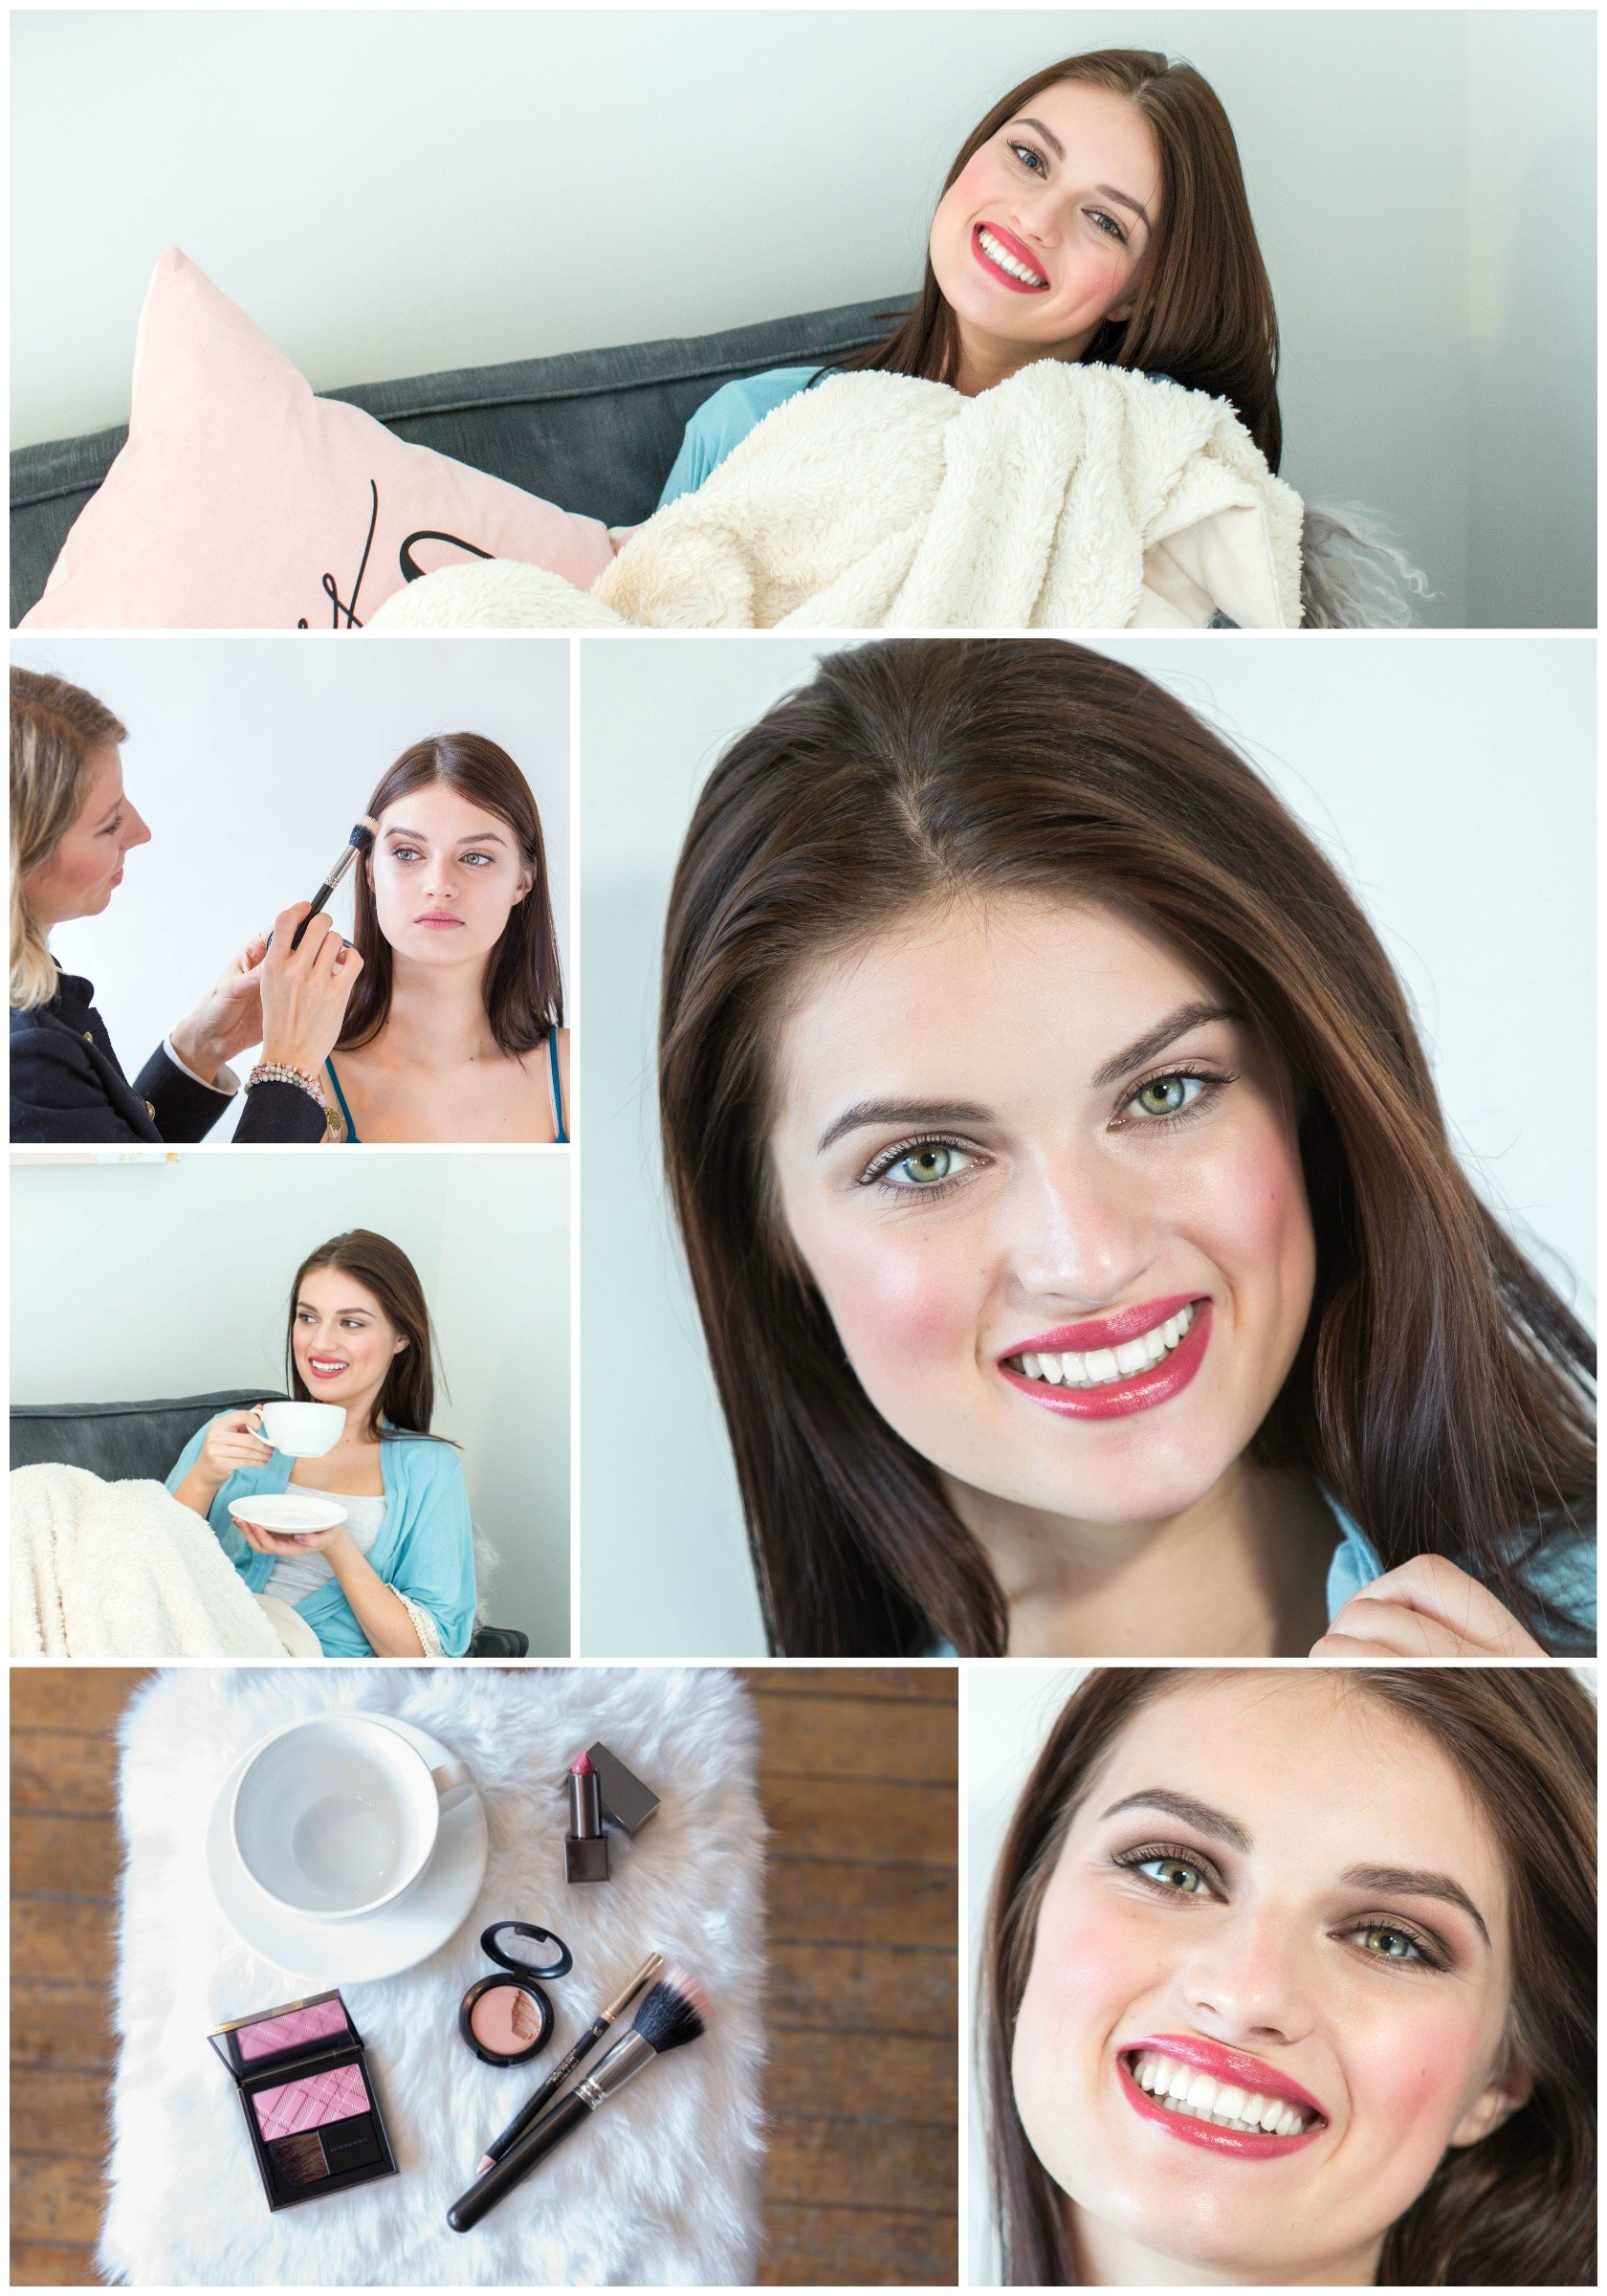 Wakeup Makeup Collage, behind the scenes doing makeup, makeup products